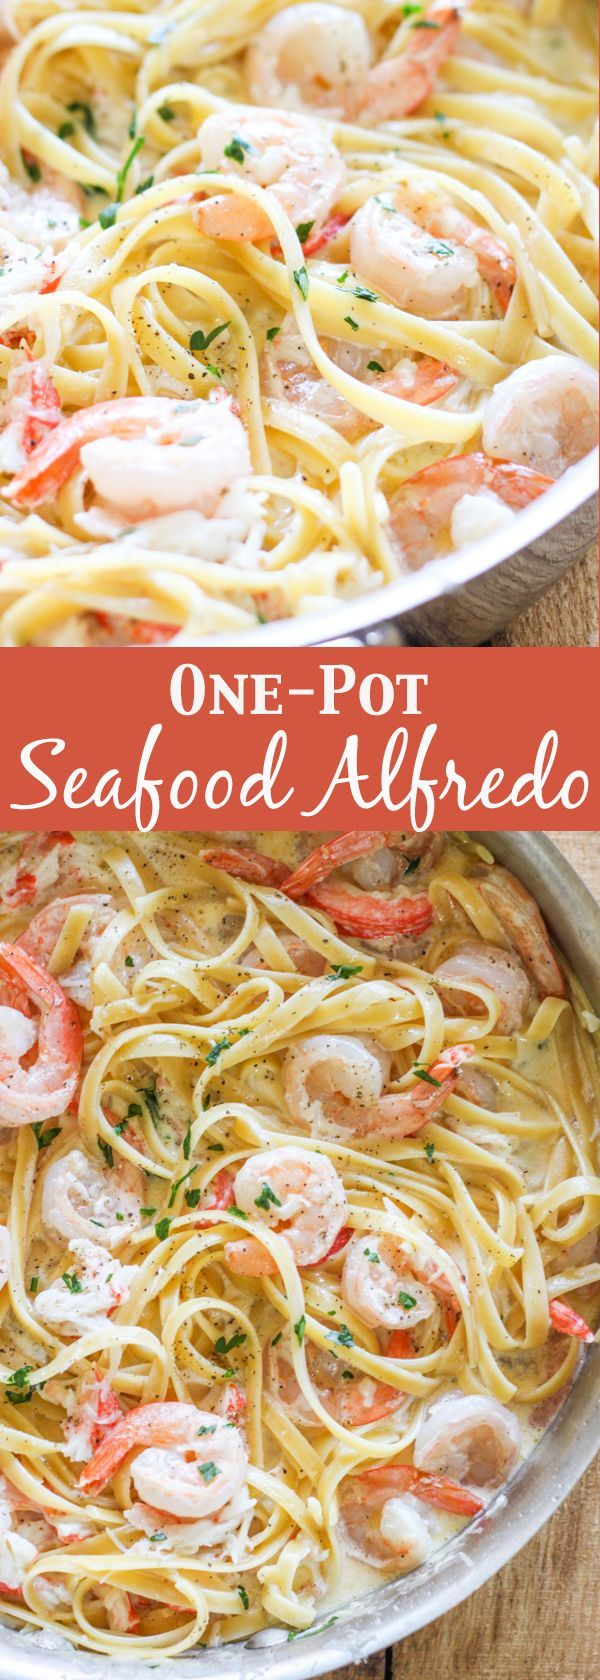 one pot seafood alfredo- Succulent sautéed shrimp and sweet lump crab meat in a delicious homemade alfredo sauce. This homemade one-pot seafood alfredo is better than Olive Garden!